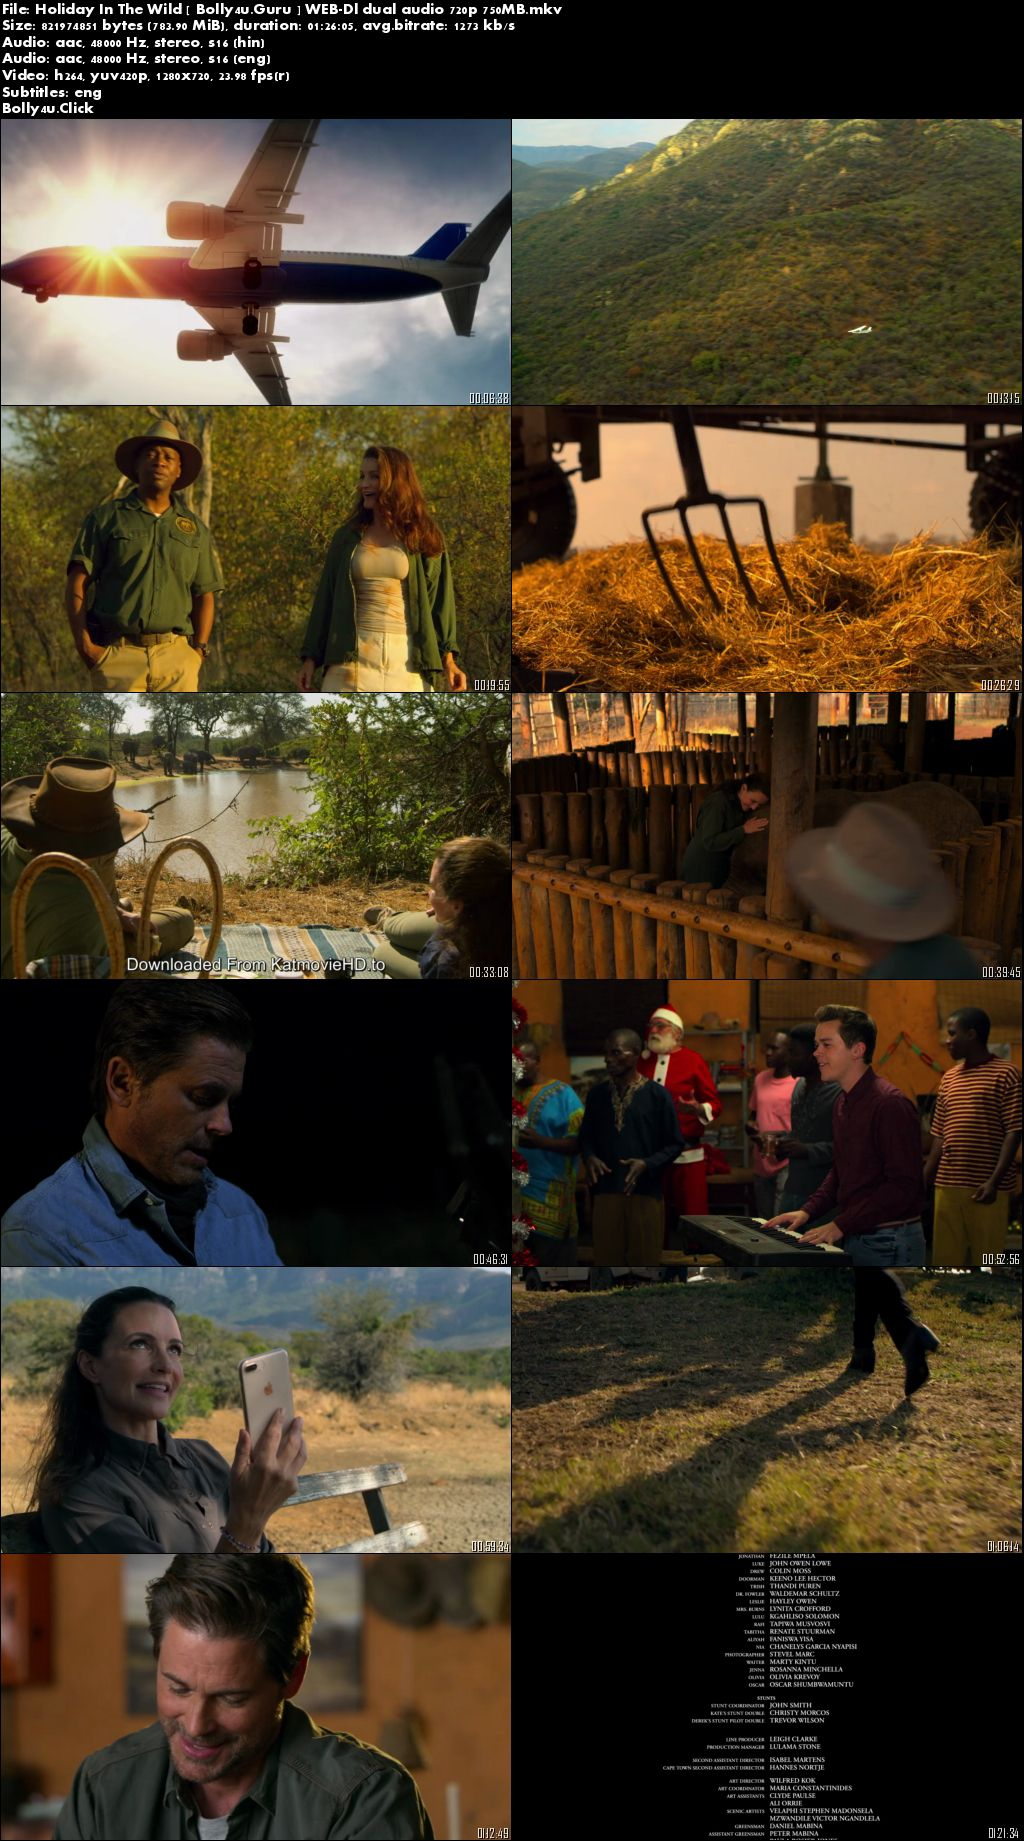 Holiday In The Wild 2019 WEB-DL 300Mb Hindi Dual Audio 480p Download